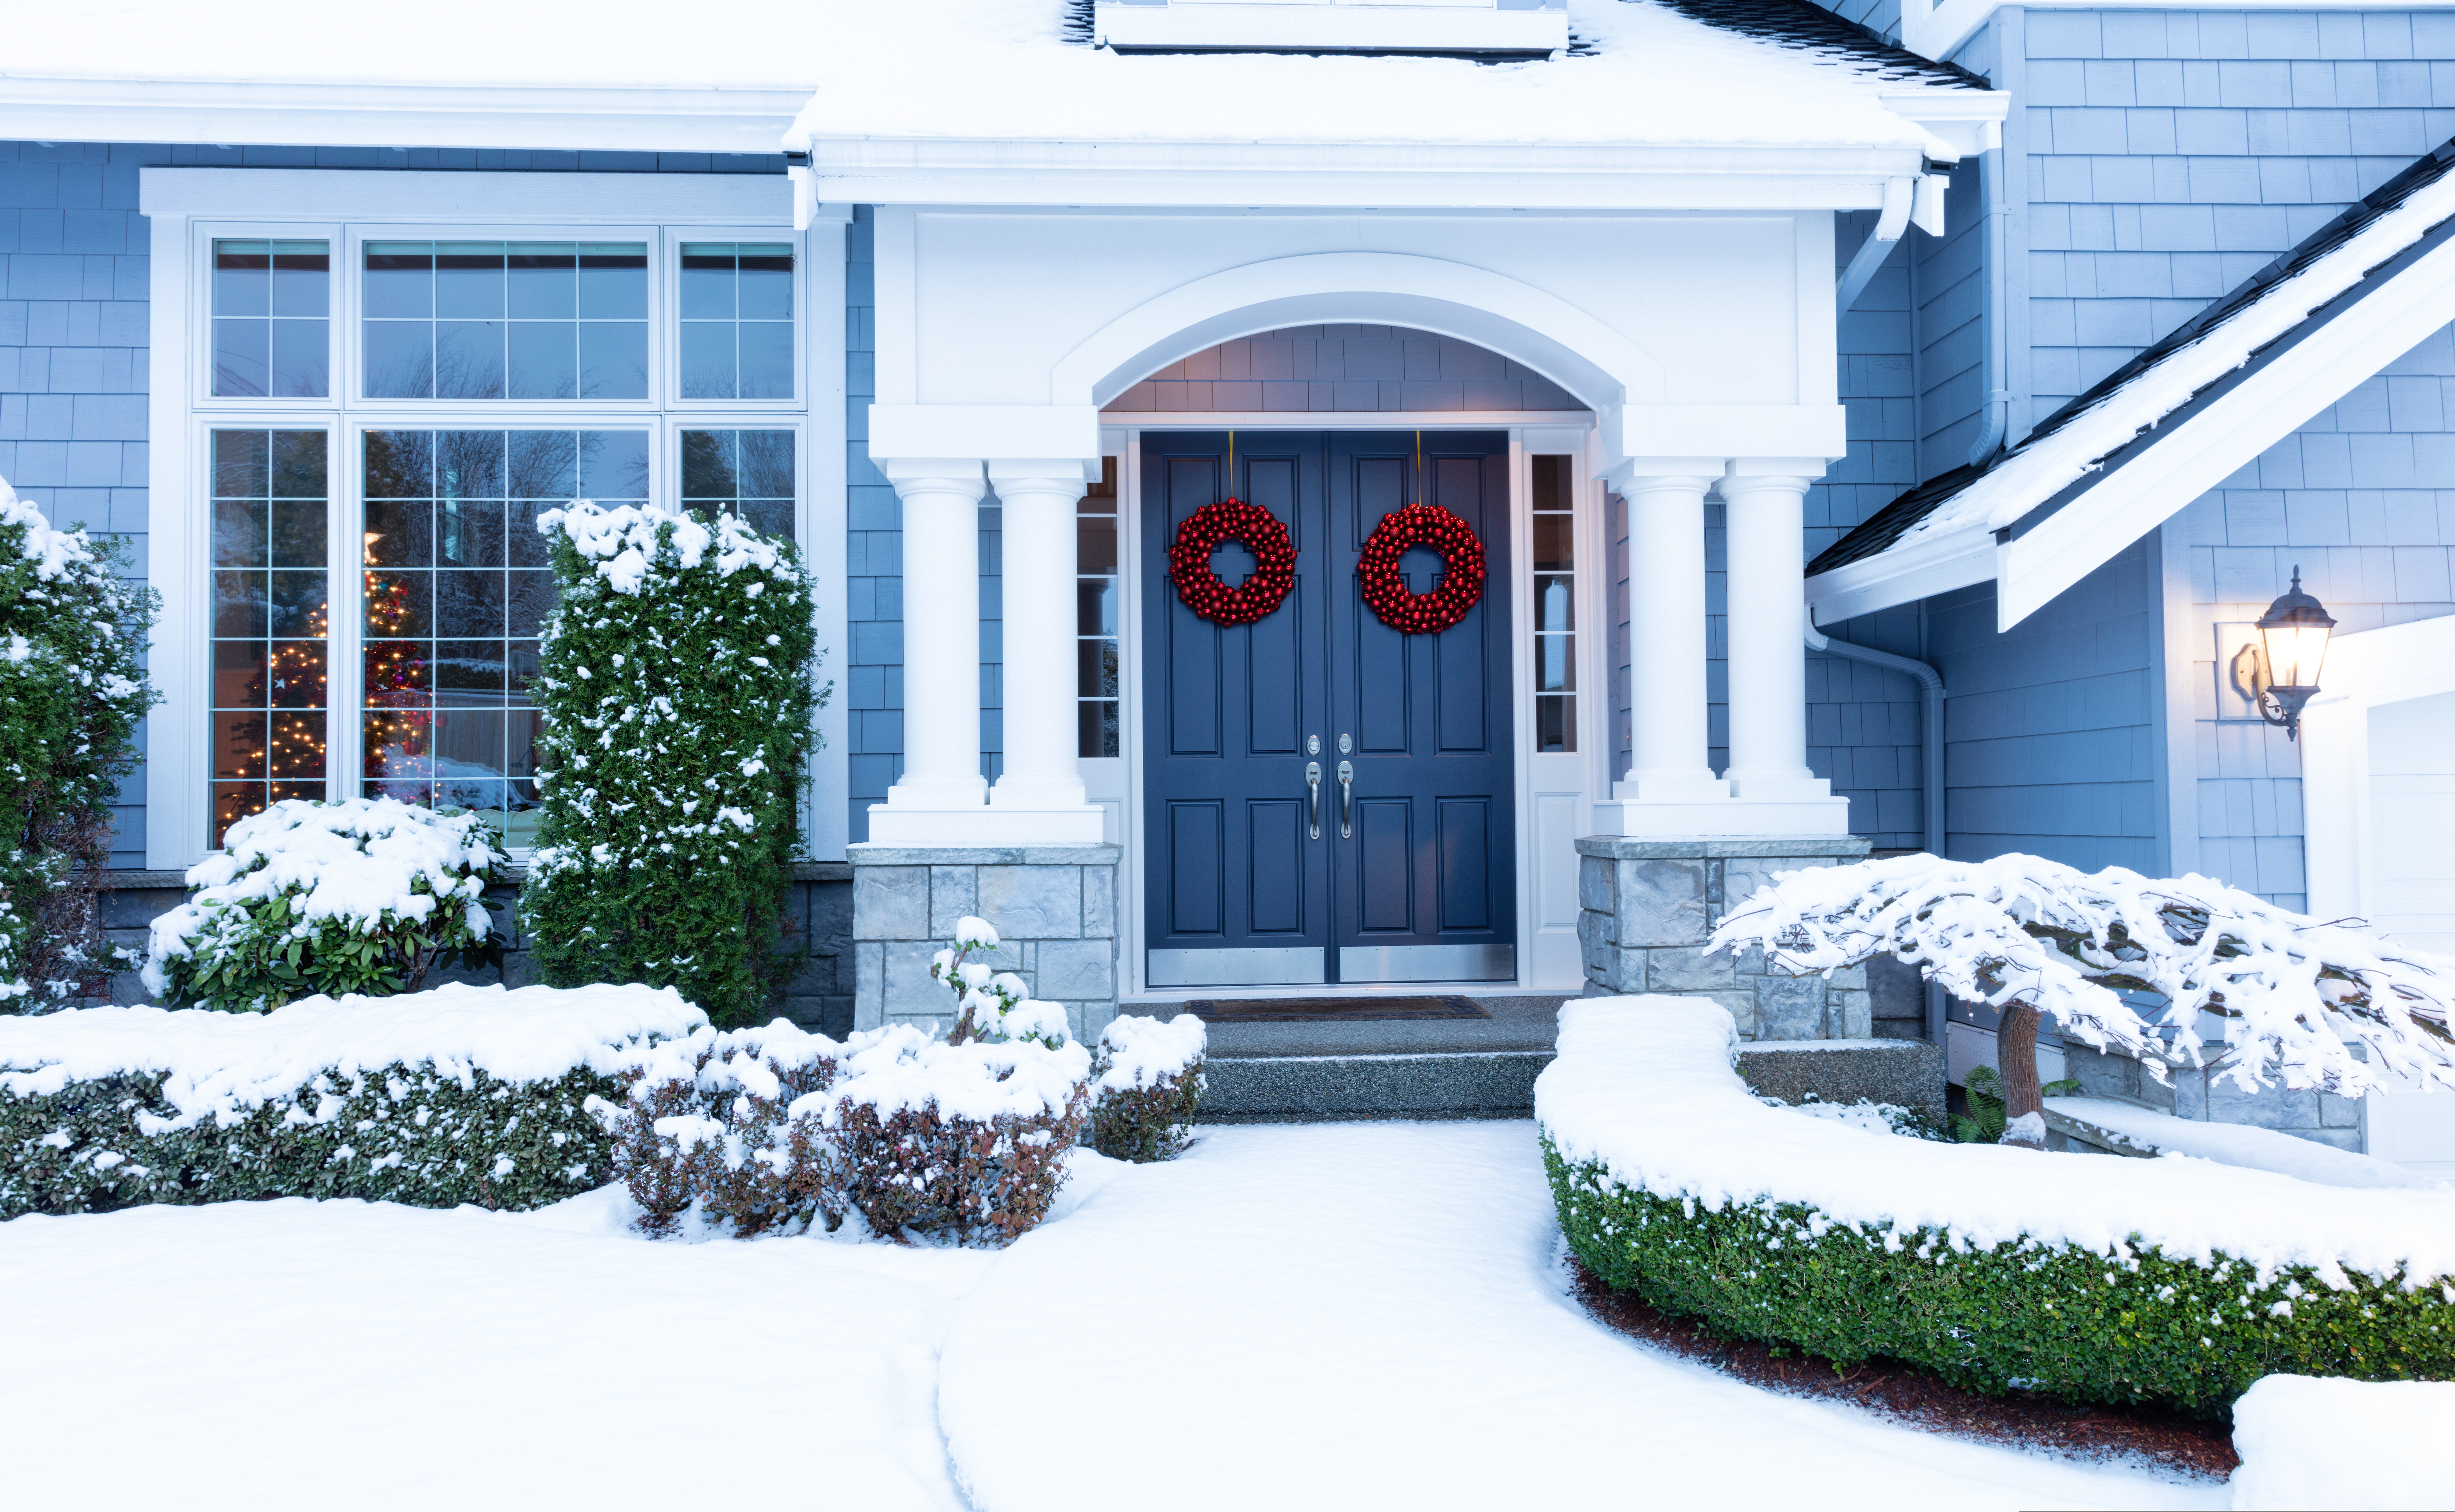 Walkway To A Fresh Blanket Of Snow on a Residential Home